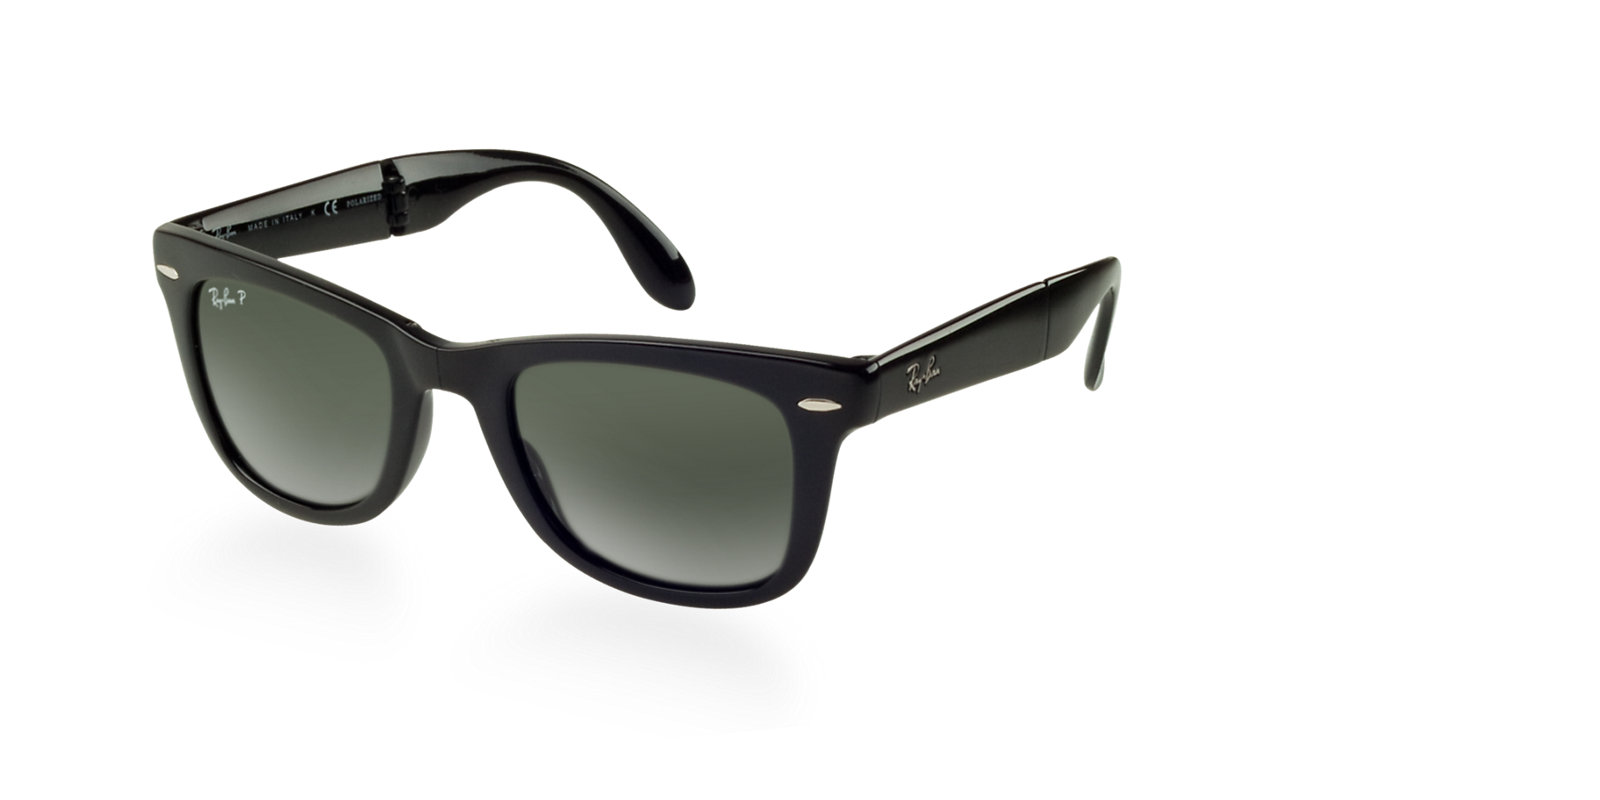 95c5650e35 Previous  Next. Previous  Next. RAY-BAN RB4105 601 58 BLACK POLARIZED FOLDING  WAYFARER SUNGLASSES